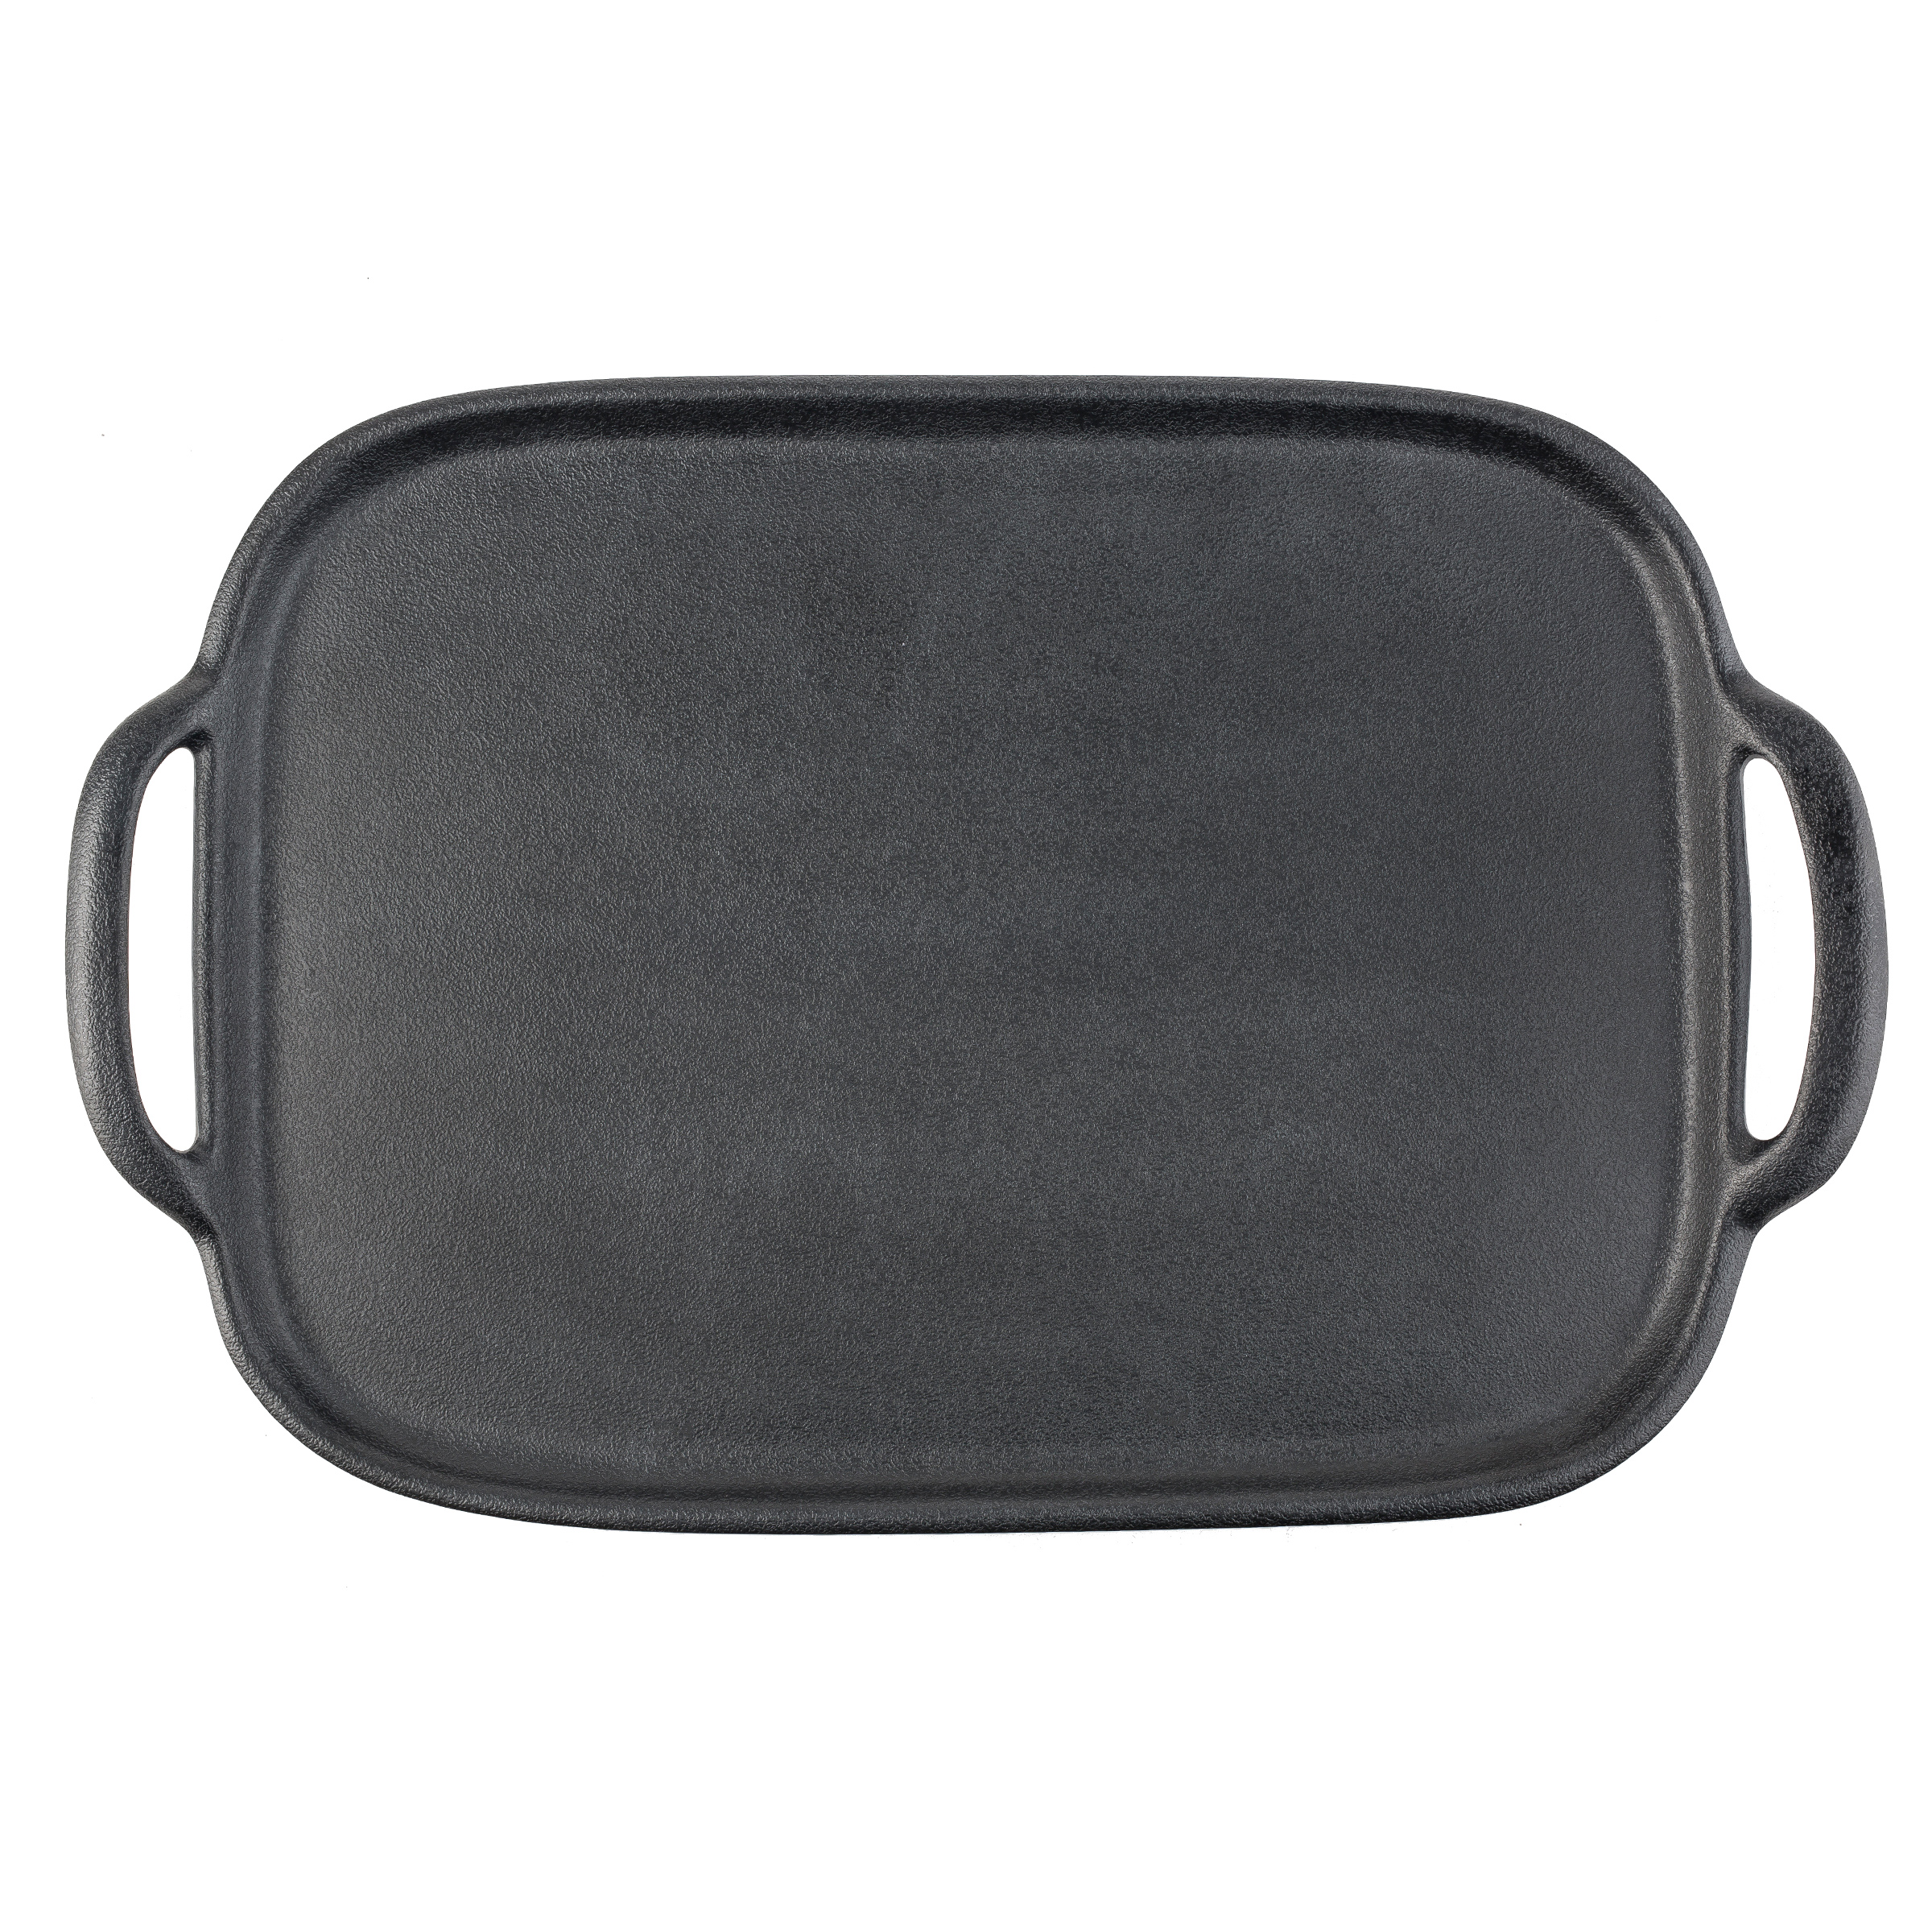 TableCraft Products 10048 serving & display tray